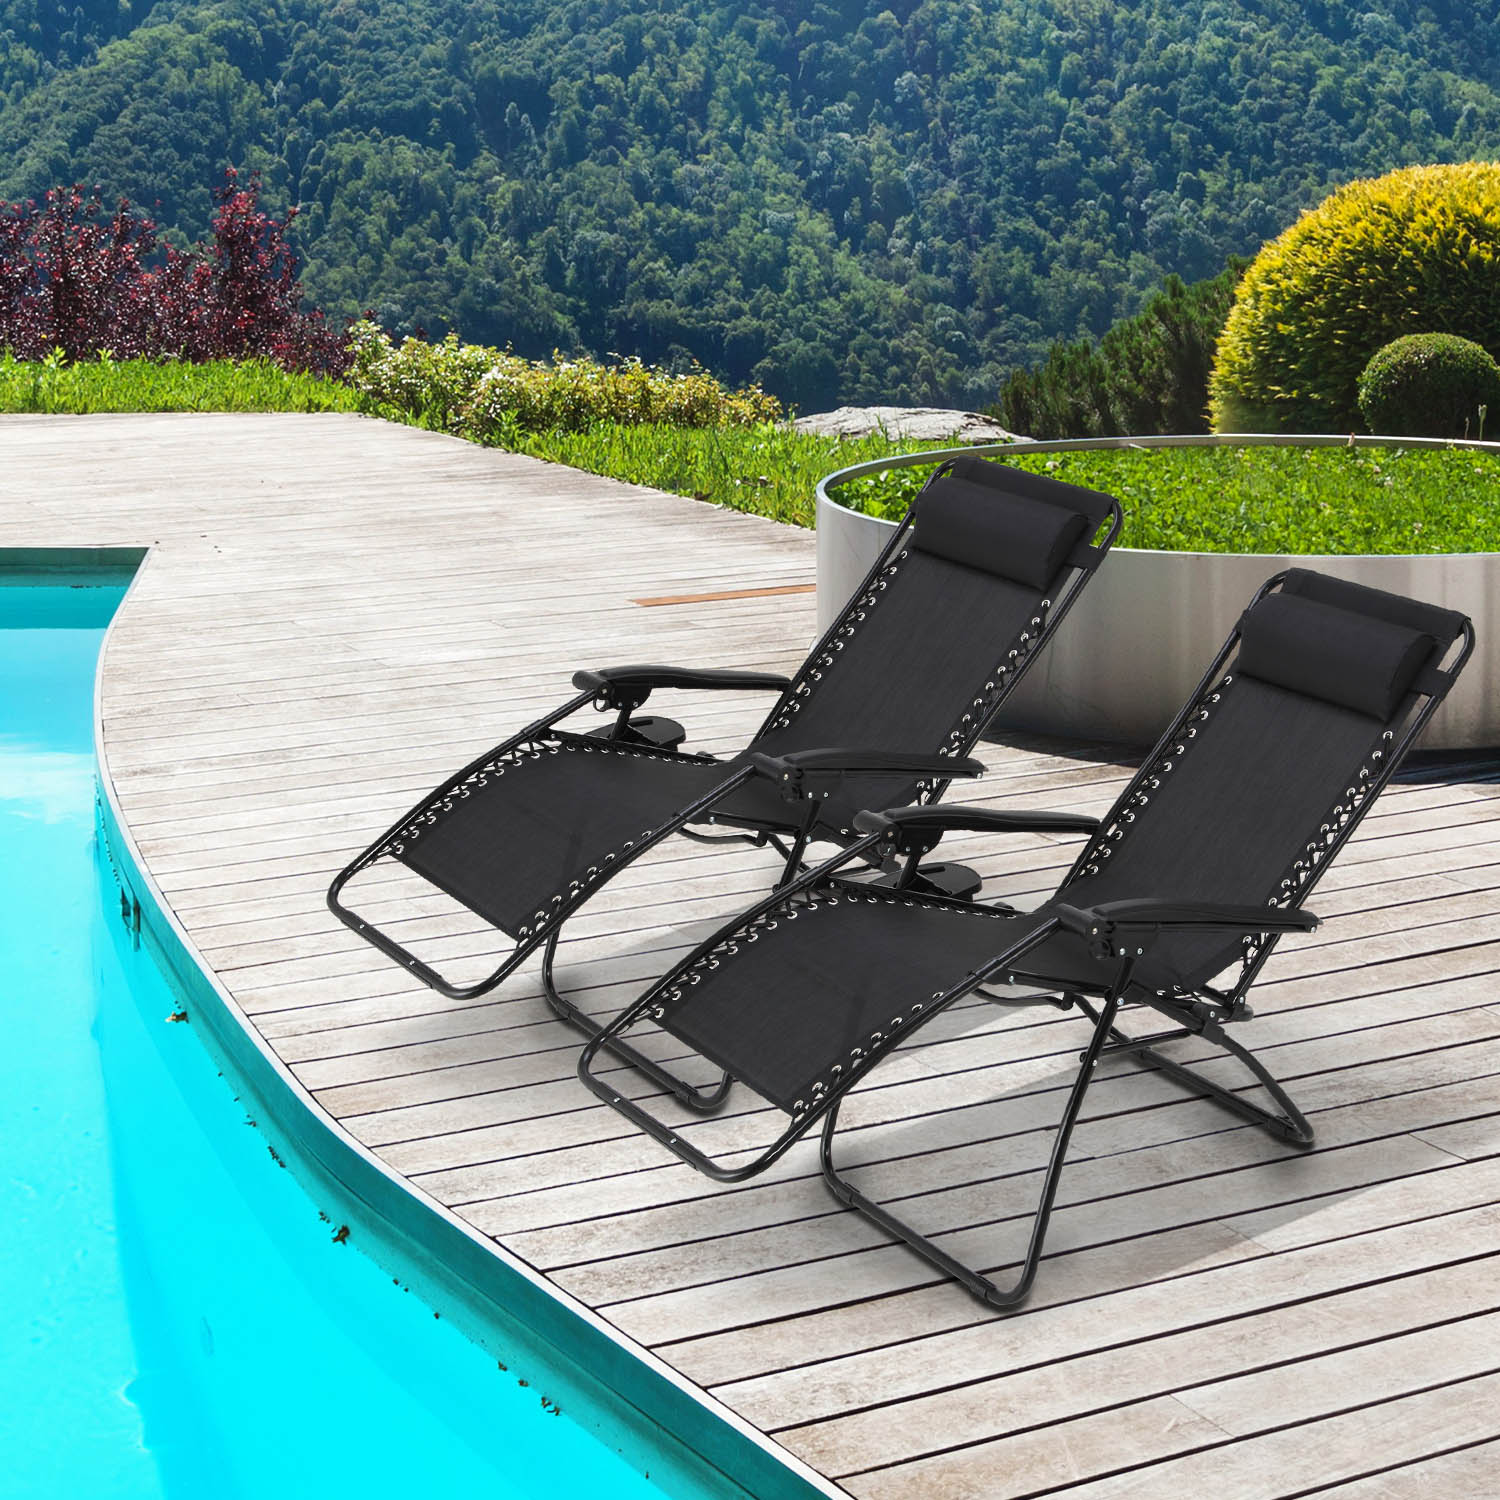 zero gravity chair 2 pack decorative chairs cheap mllieroo folding set of adjustable lounge